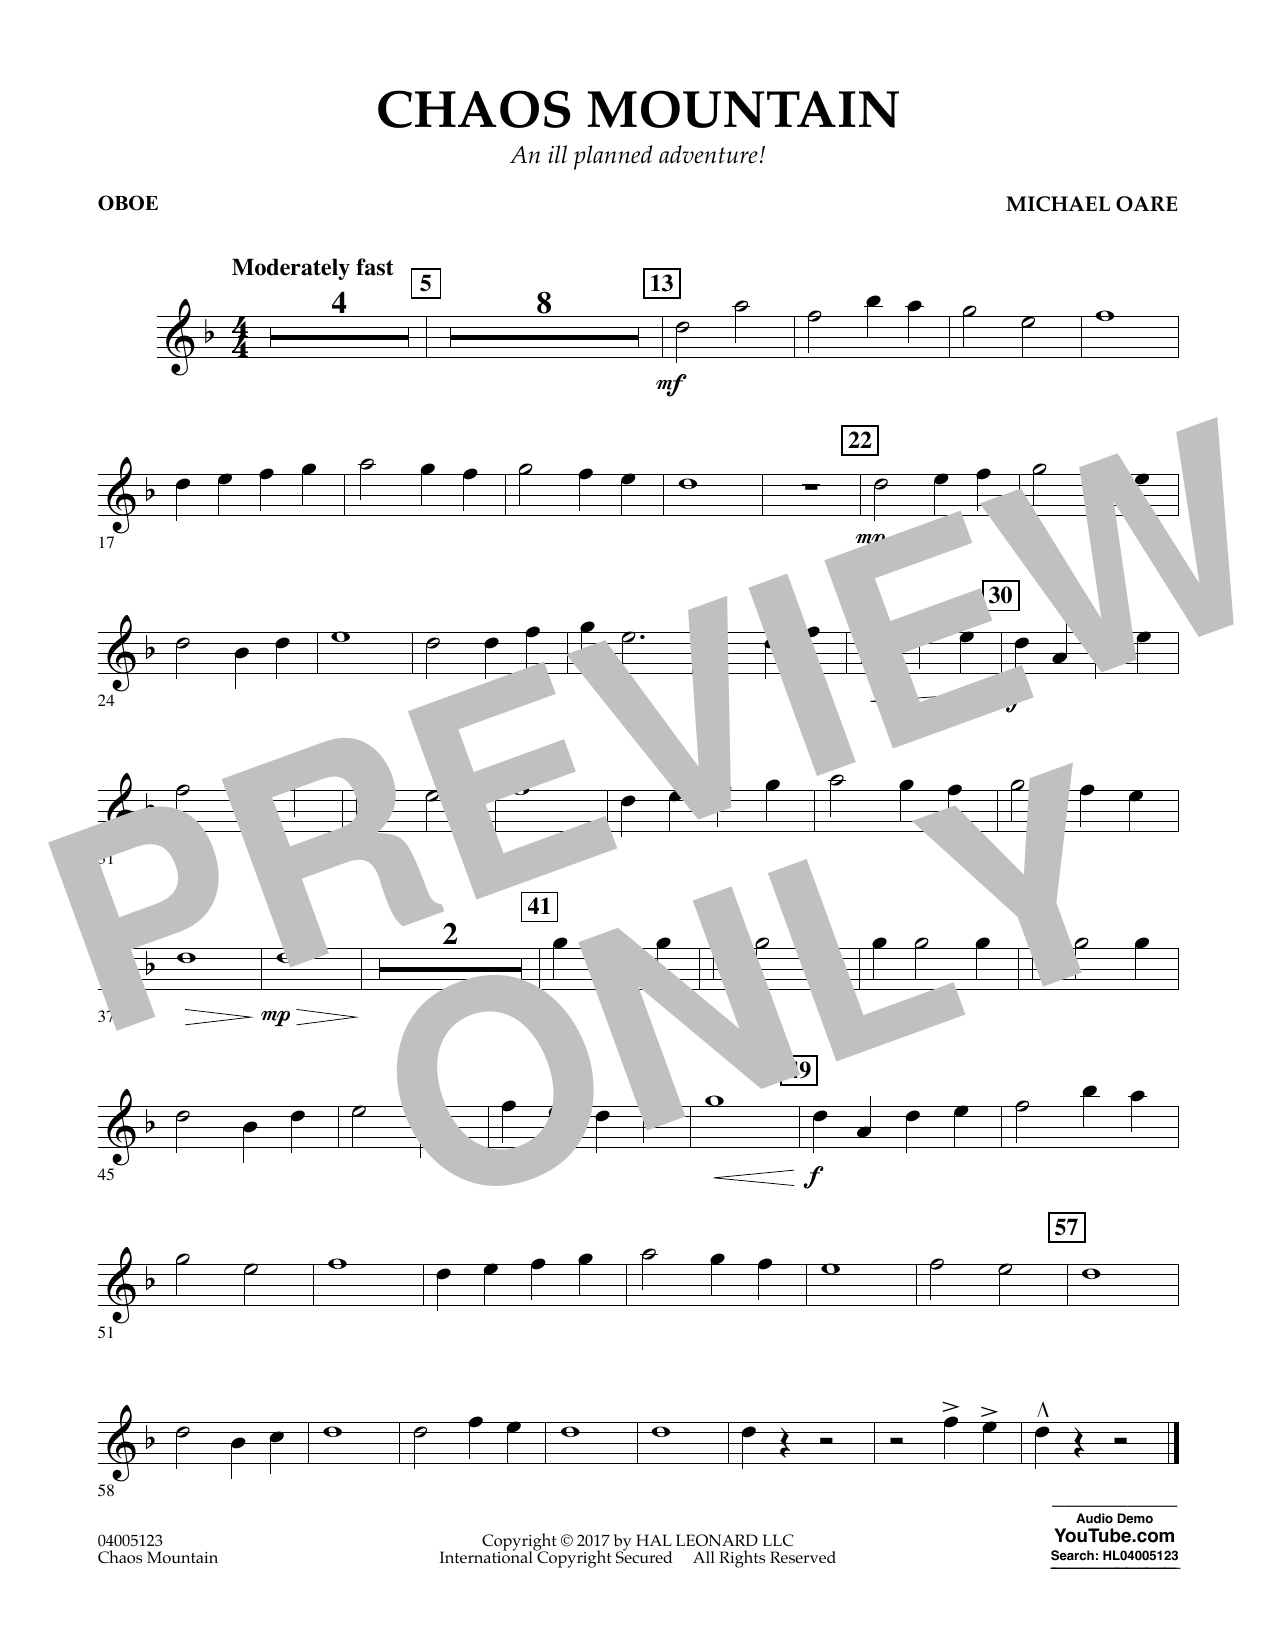 Michael Oare Chaos Mountain - Oboe sheet music notes and chords. Download Printable PDF.